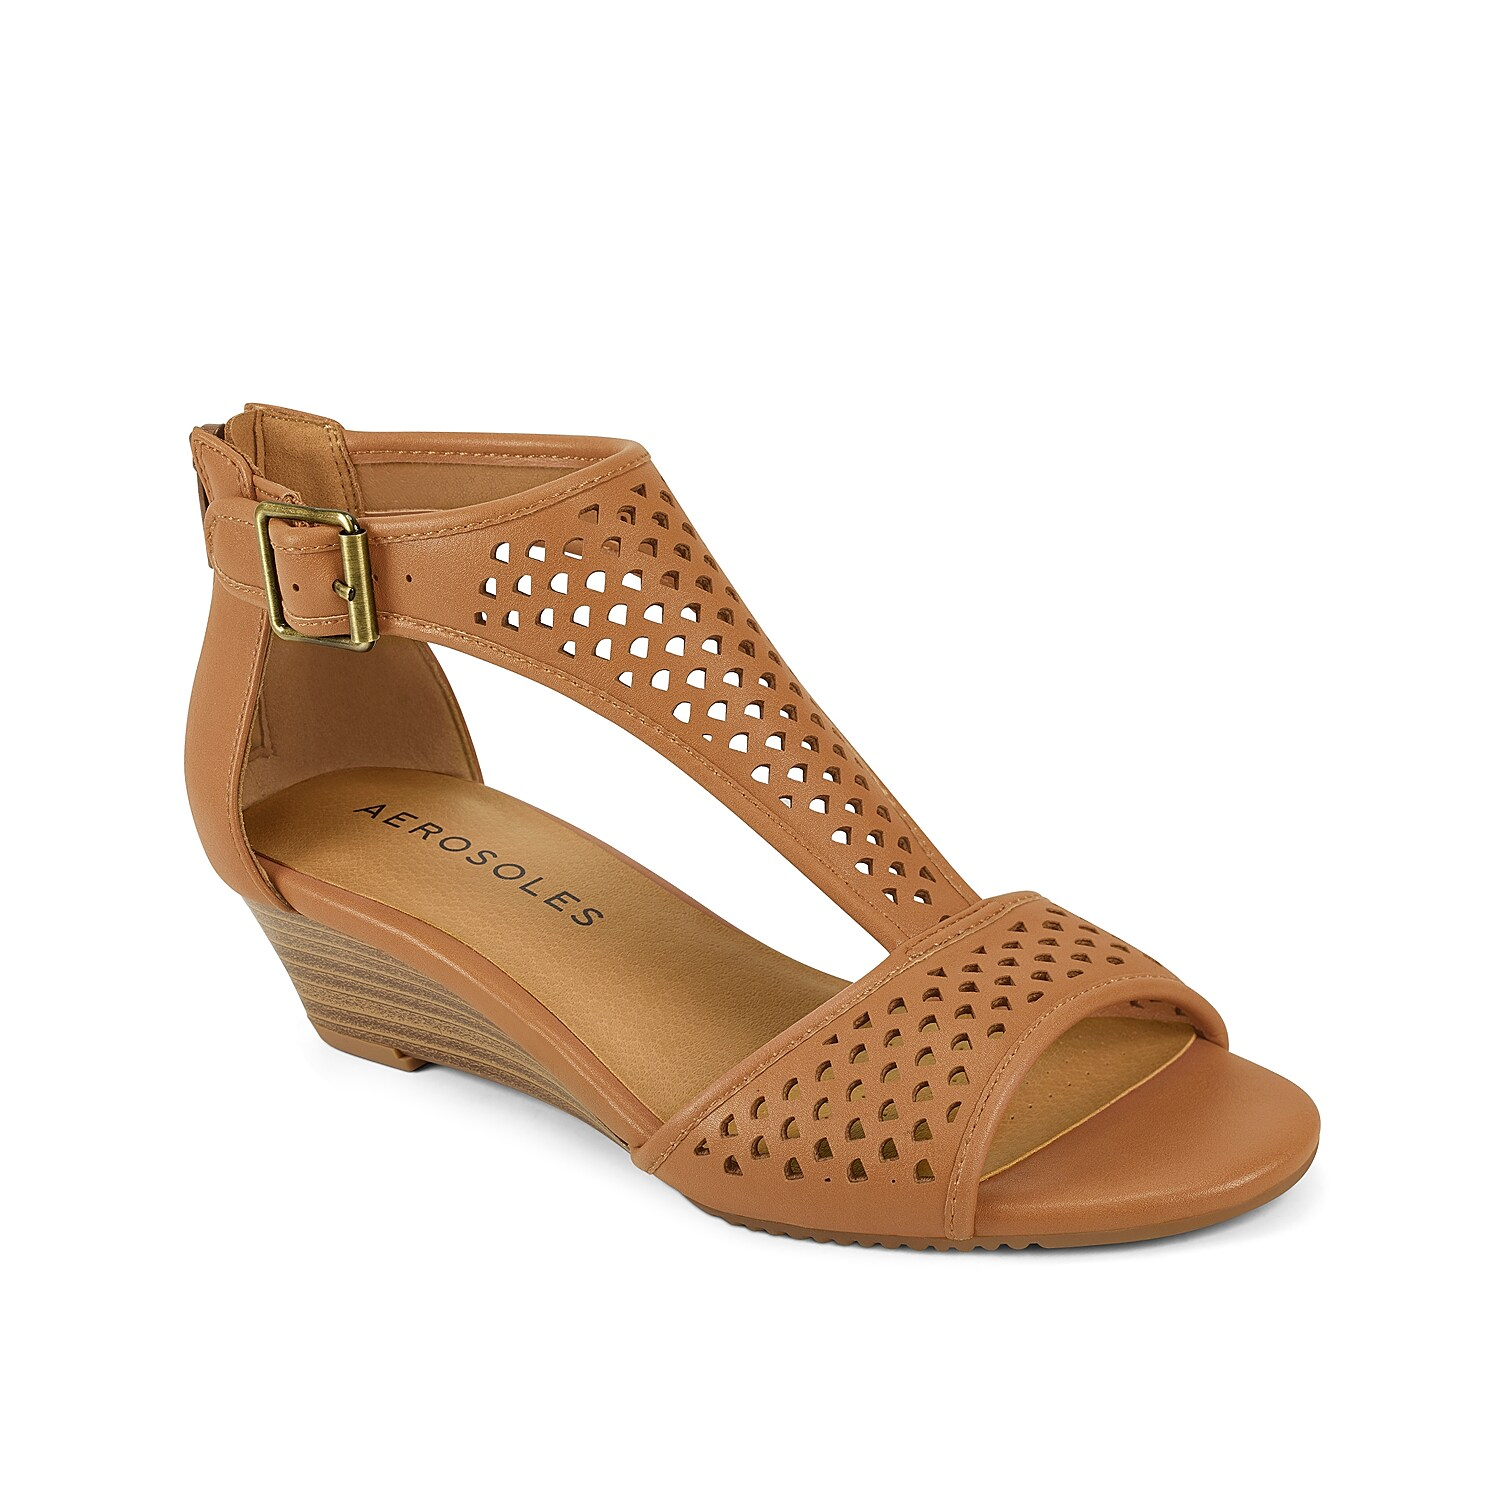 Style and comfort combine in the Sapphire wedge sandal from Aerosoles. This laser-cut pair features a memory foam footbed with Heel Rest Technology for daylong comfort.